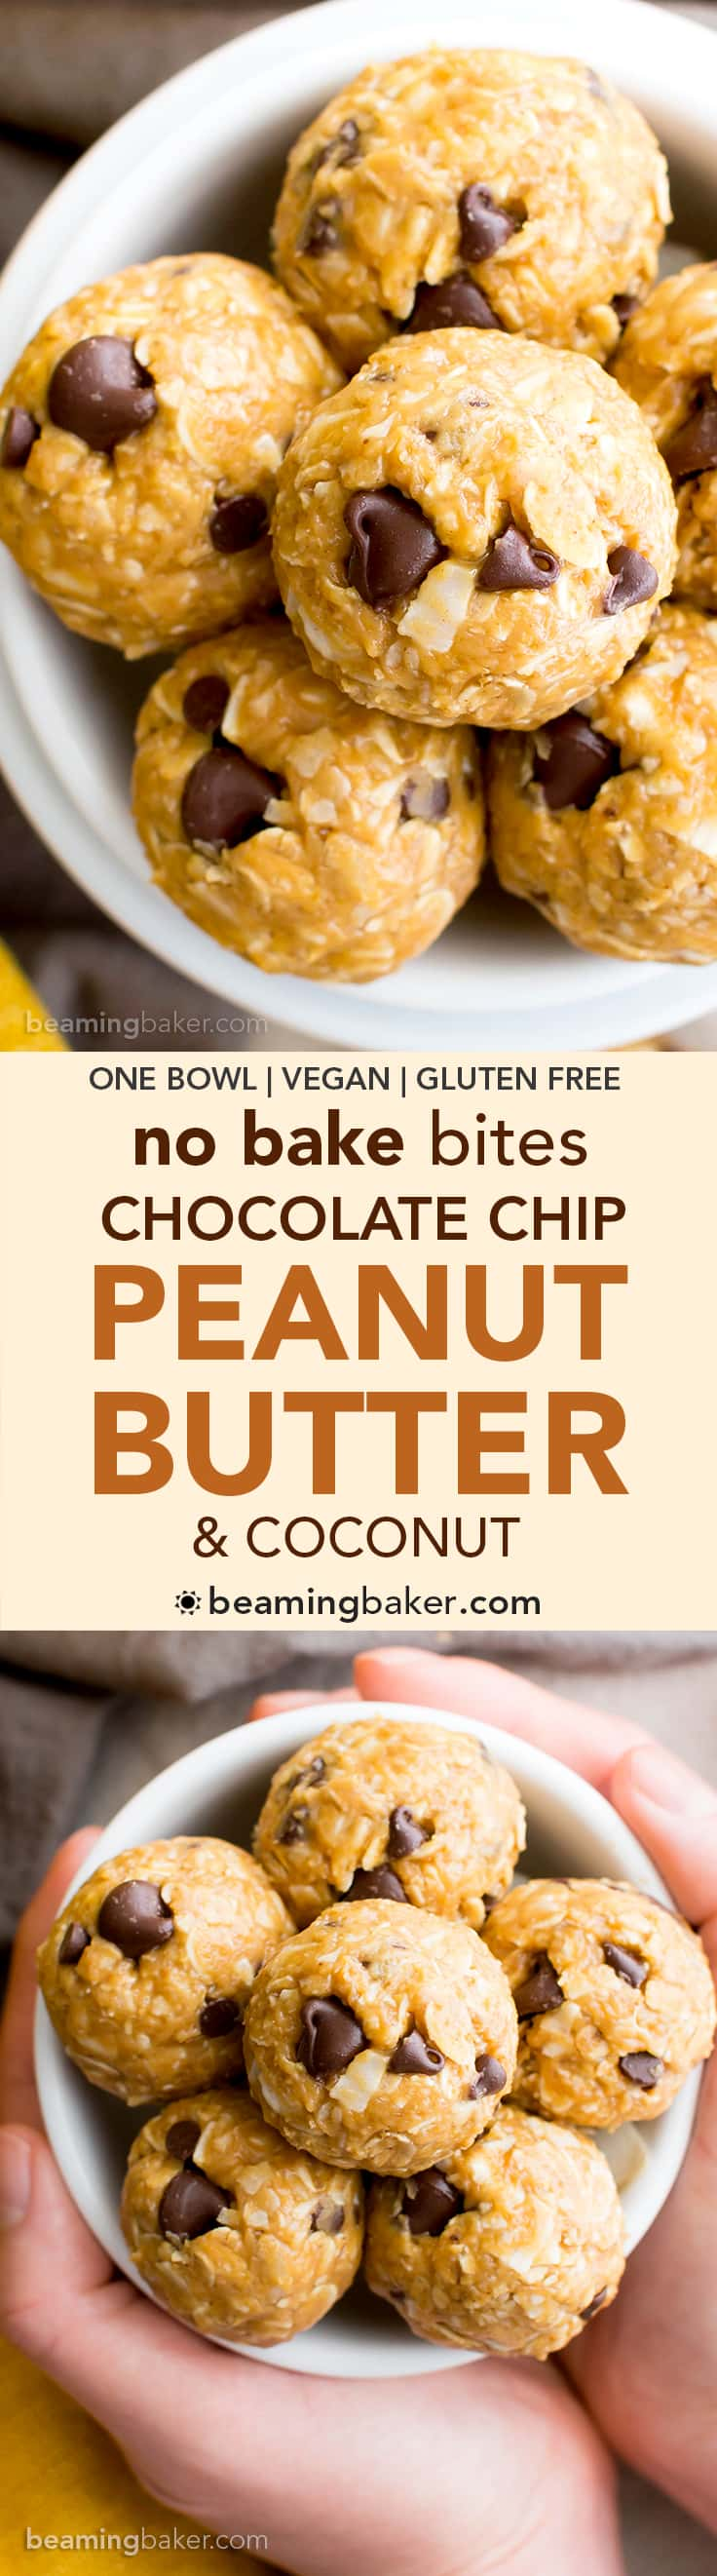 No Bake Peanut Butter Coconut Chocolate Chip Bites (V, GF, DF): a one bowl recipe for delicious protein-packed energy bites bursting with PB, chocolate and coconut! #Vegan #GlutenFree #DairyFree | BeamingBaker.com